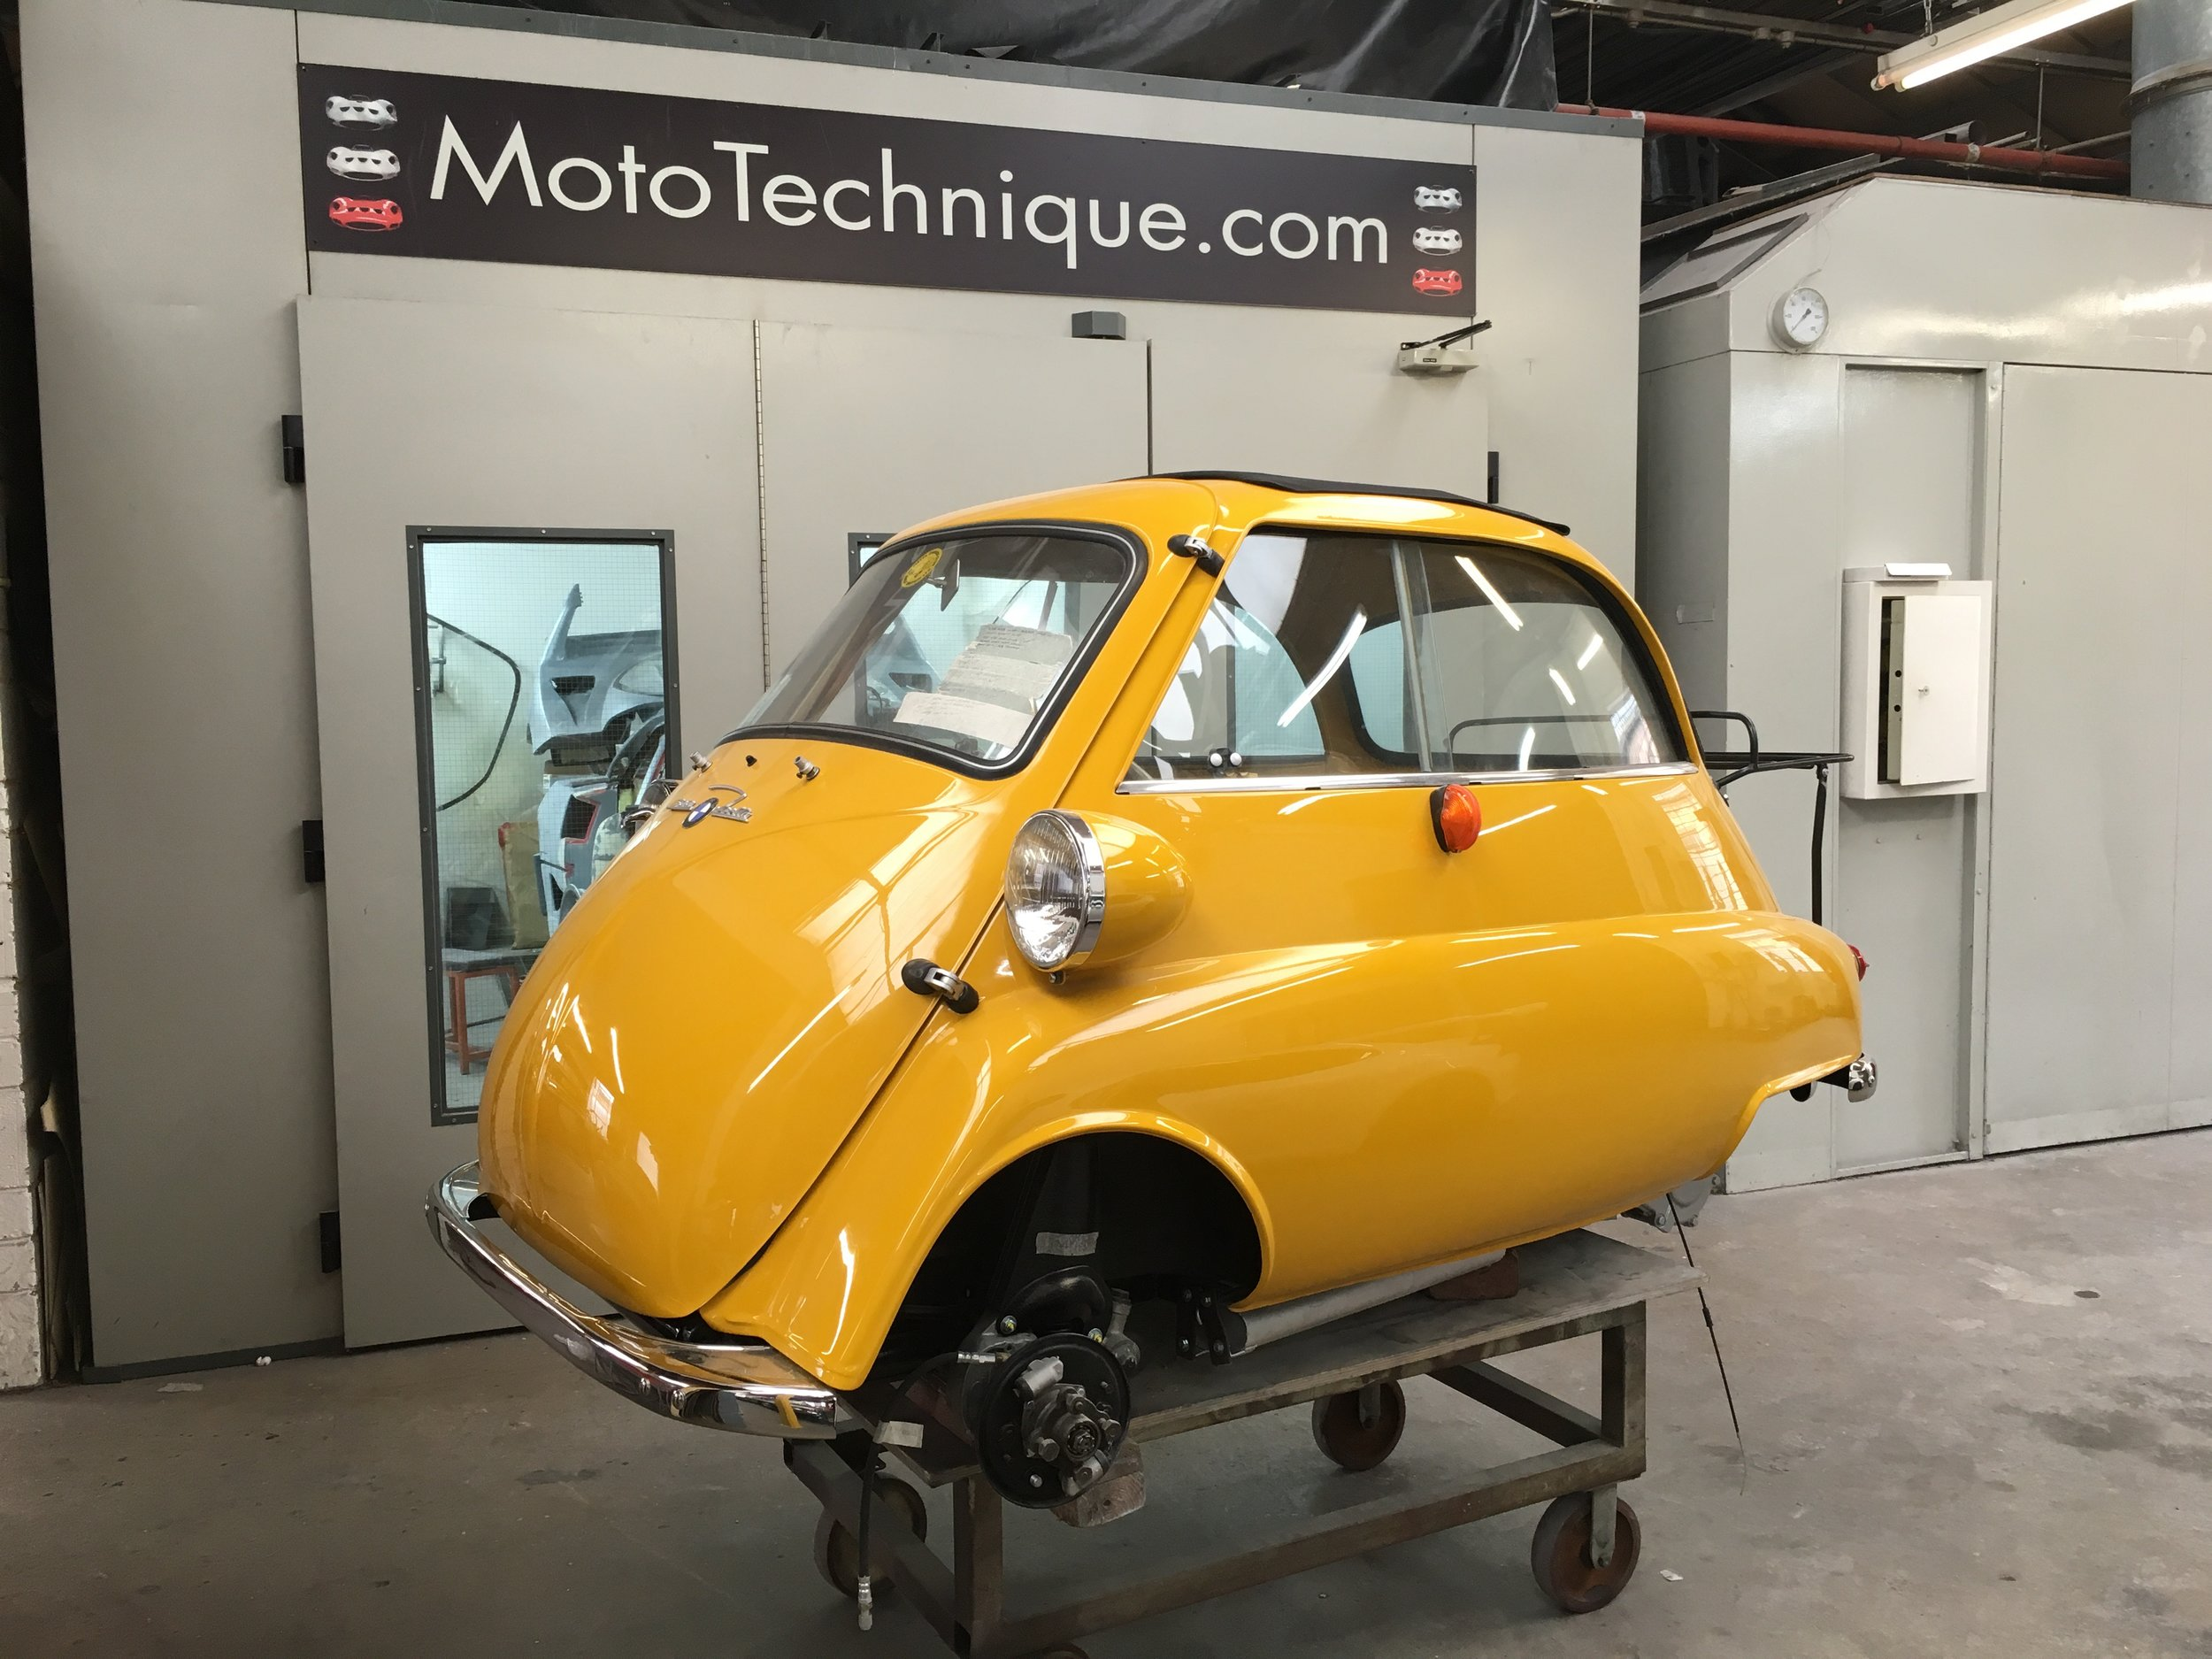 BMW Isetta 300 or Ferrari 250 GTO, they all receive the same care and attention at Moto Technique.